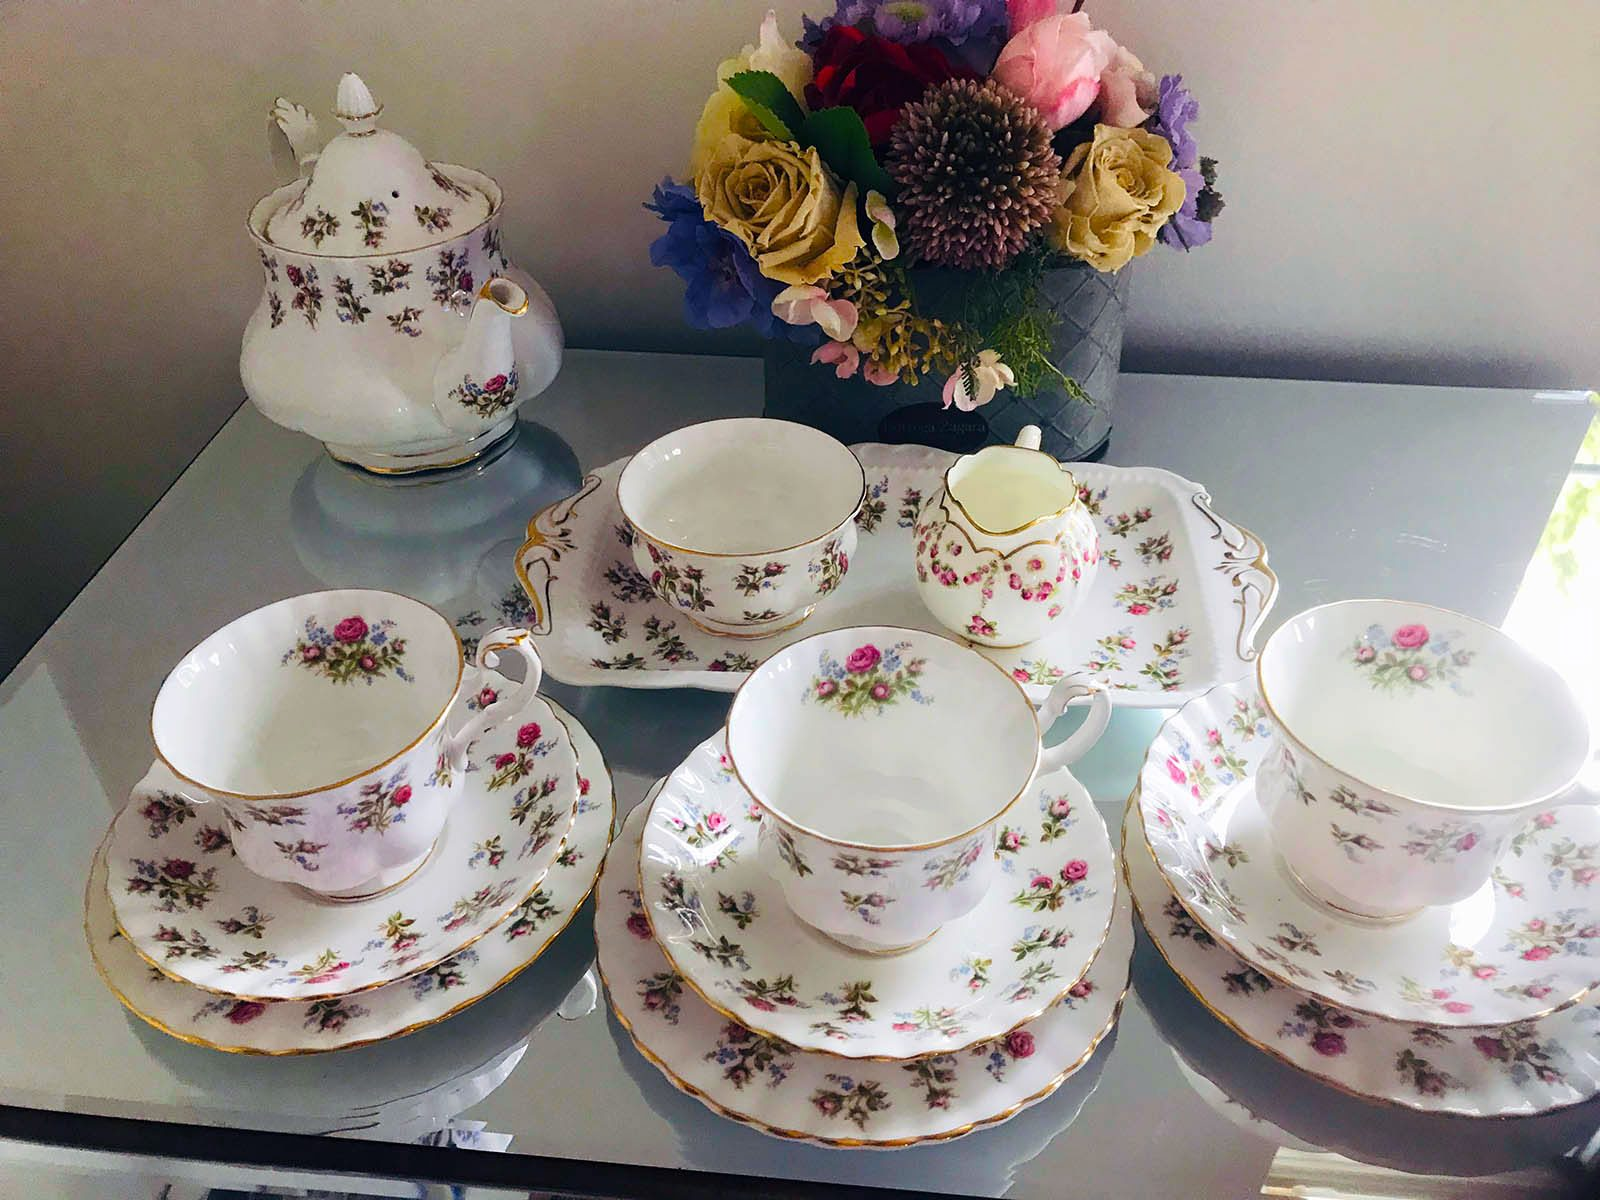 vintage-teacup-hire-north-london-home